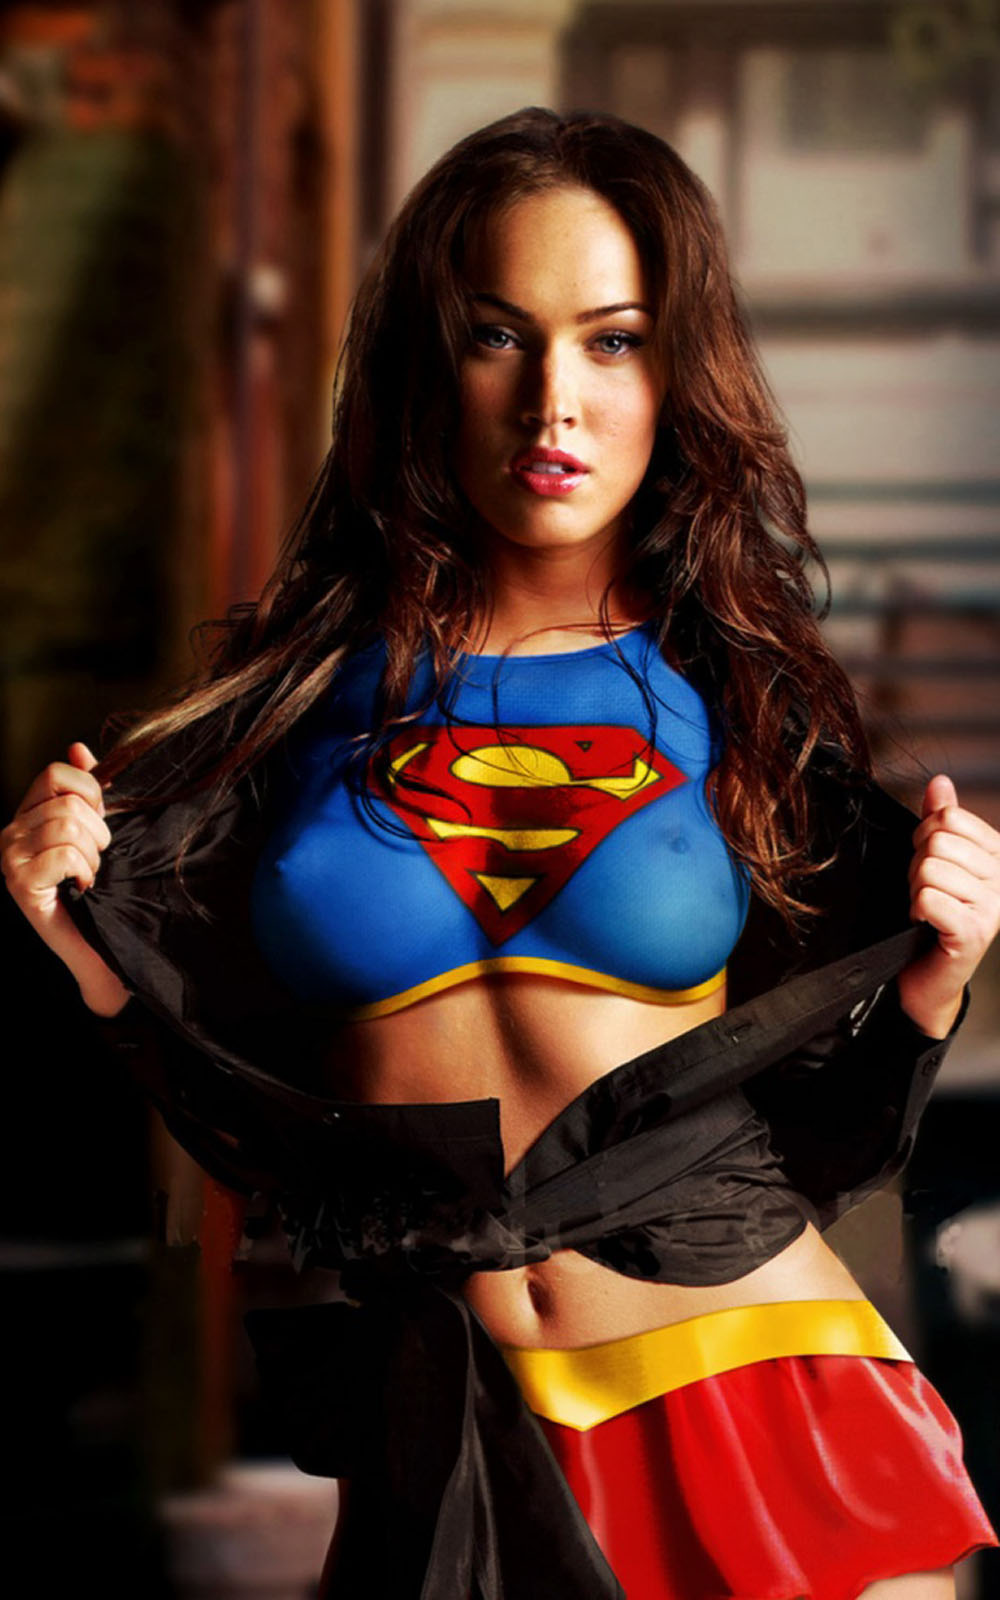 megan fox in superwoman costume - download free hd mobile wallpapers